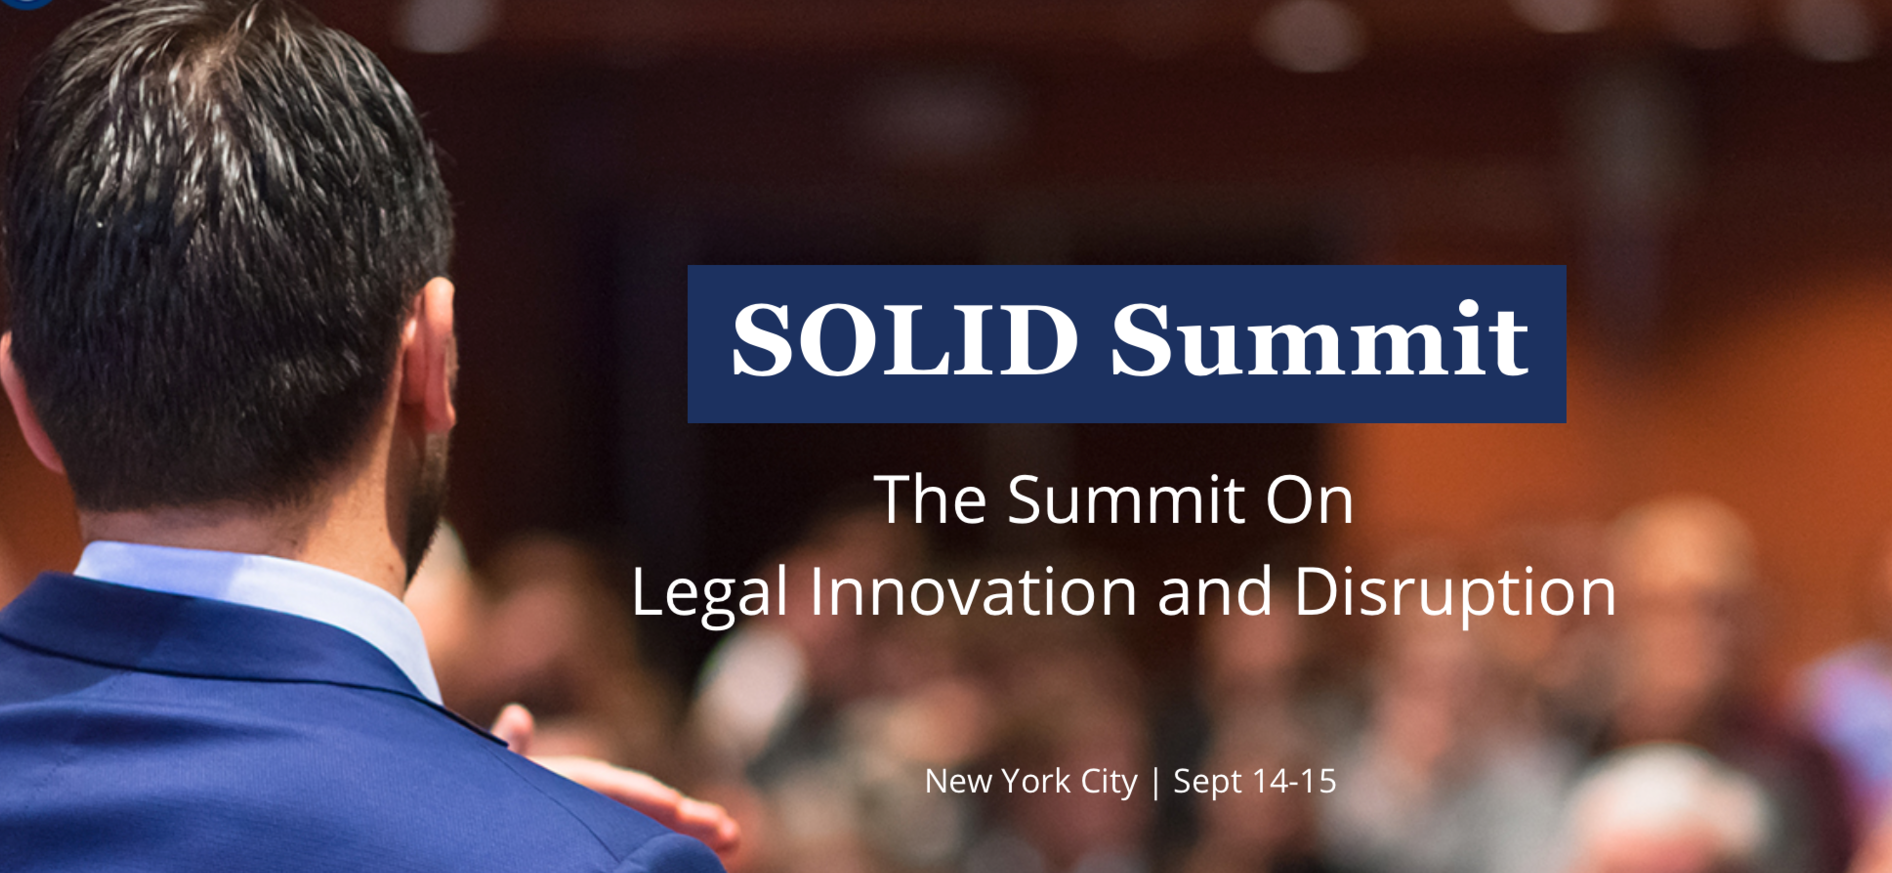 Summit On Legal Innovation and Disruption